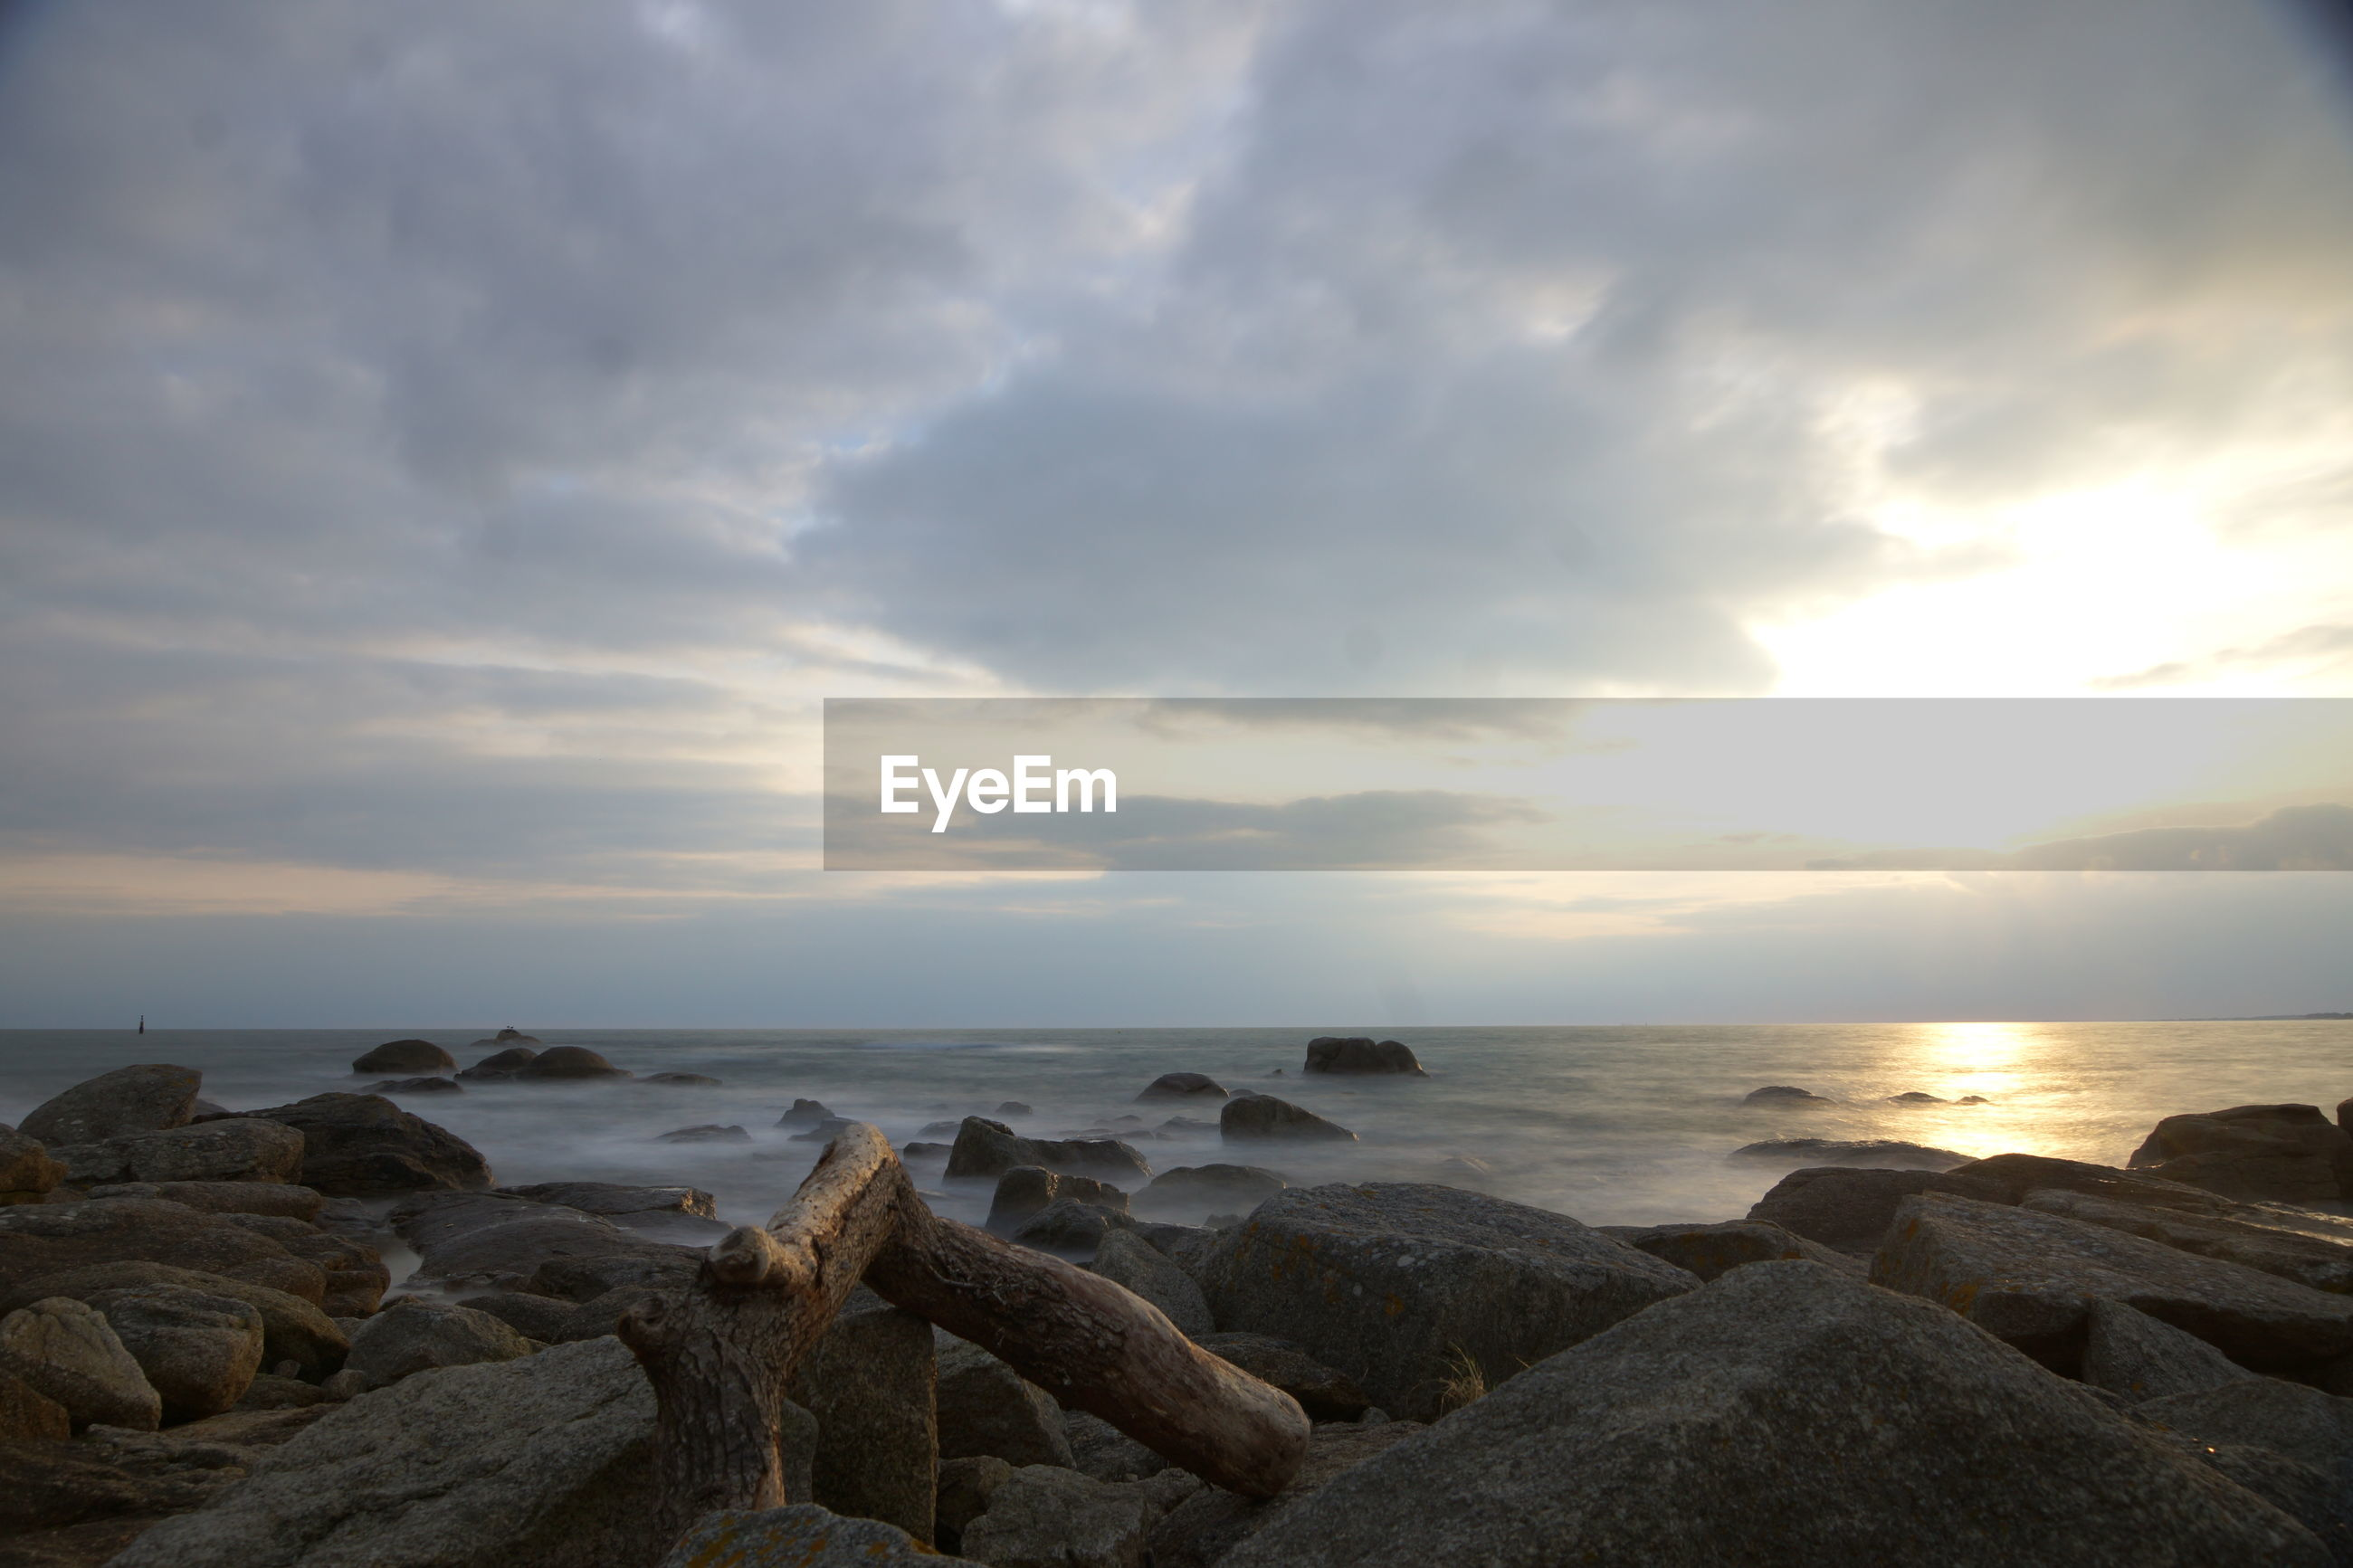 water, sea, rock - object, sky, horizon over water, scenics, sunset, tranquil scene, beauty in nature, tranquility, cloud - sky, shore, nature, beach, idyllic, rock formation, rock, stone - object, sun, cloud